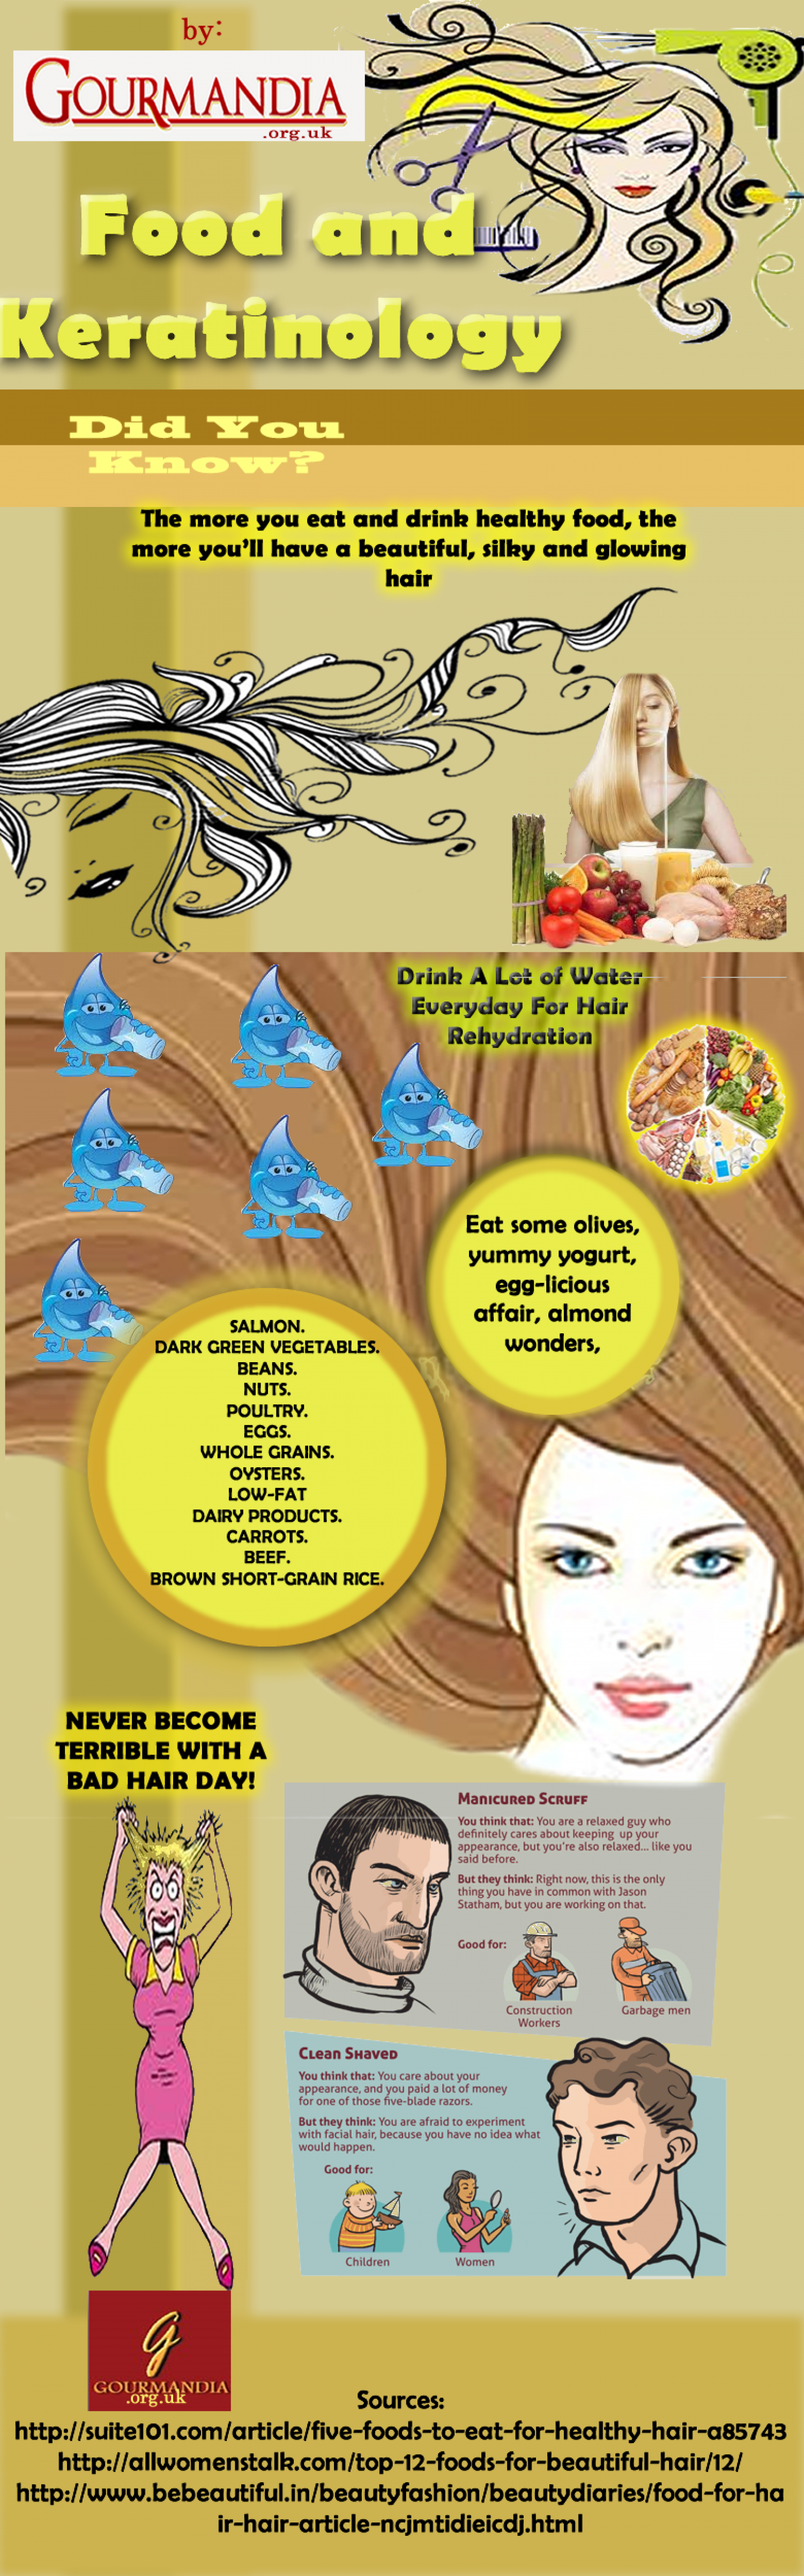 Food and Keratinology Update Infographic